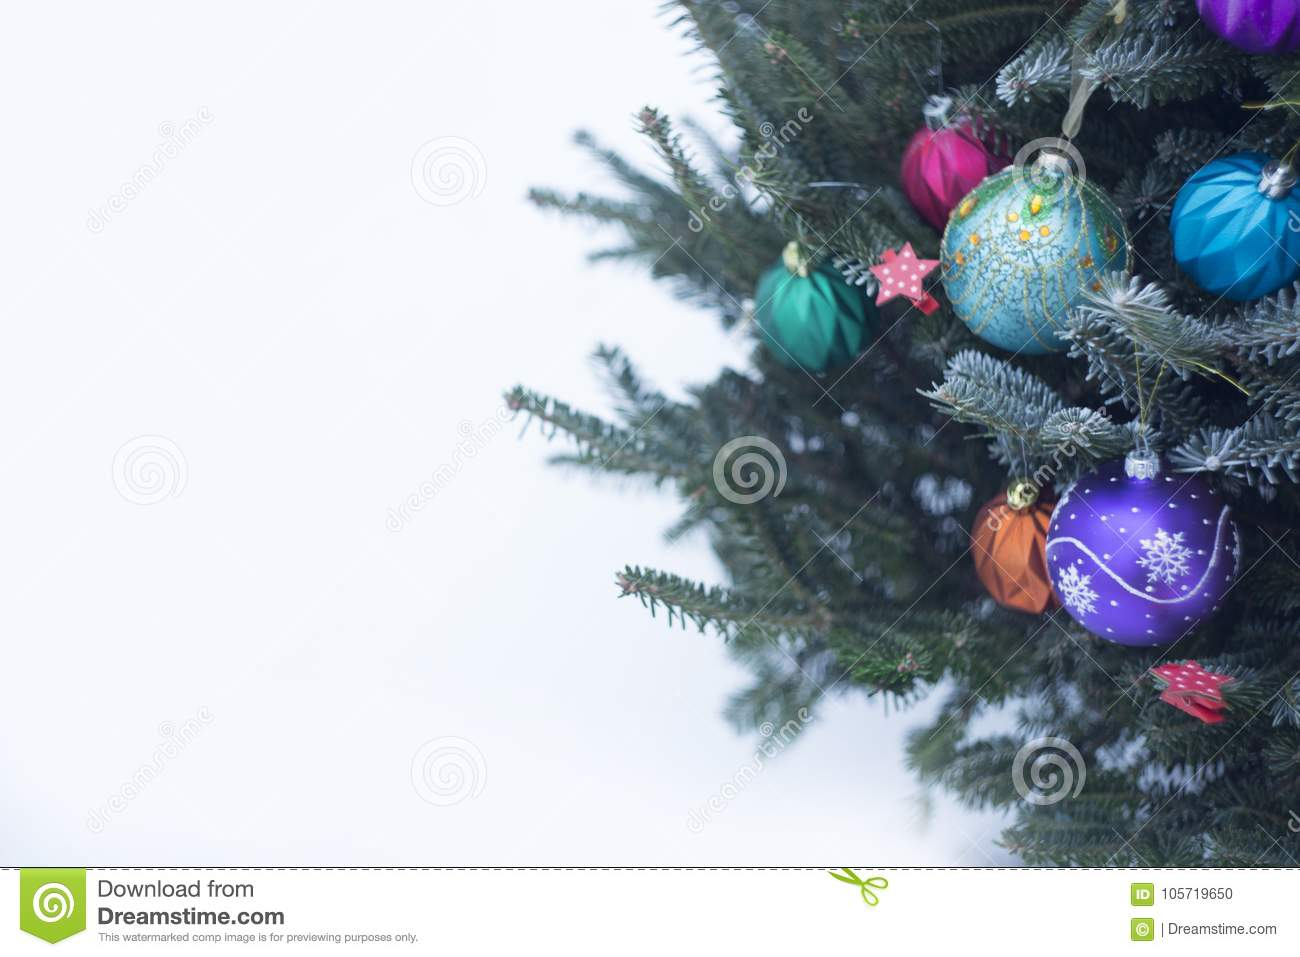 A decorated Christmas tree outside with colorful baubles made of glass